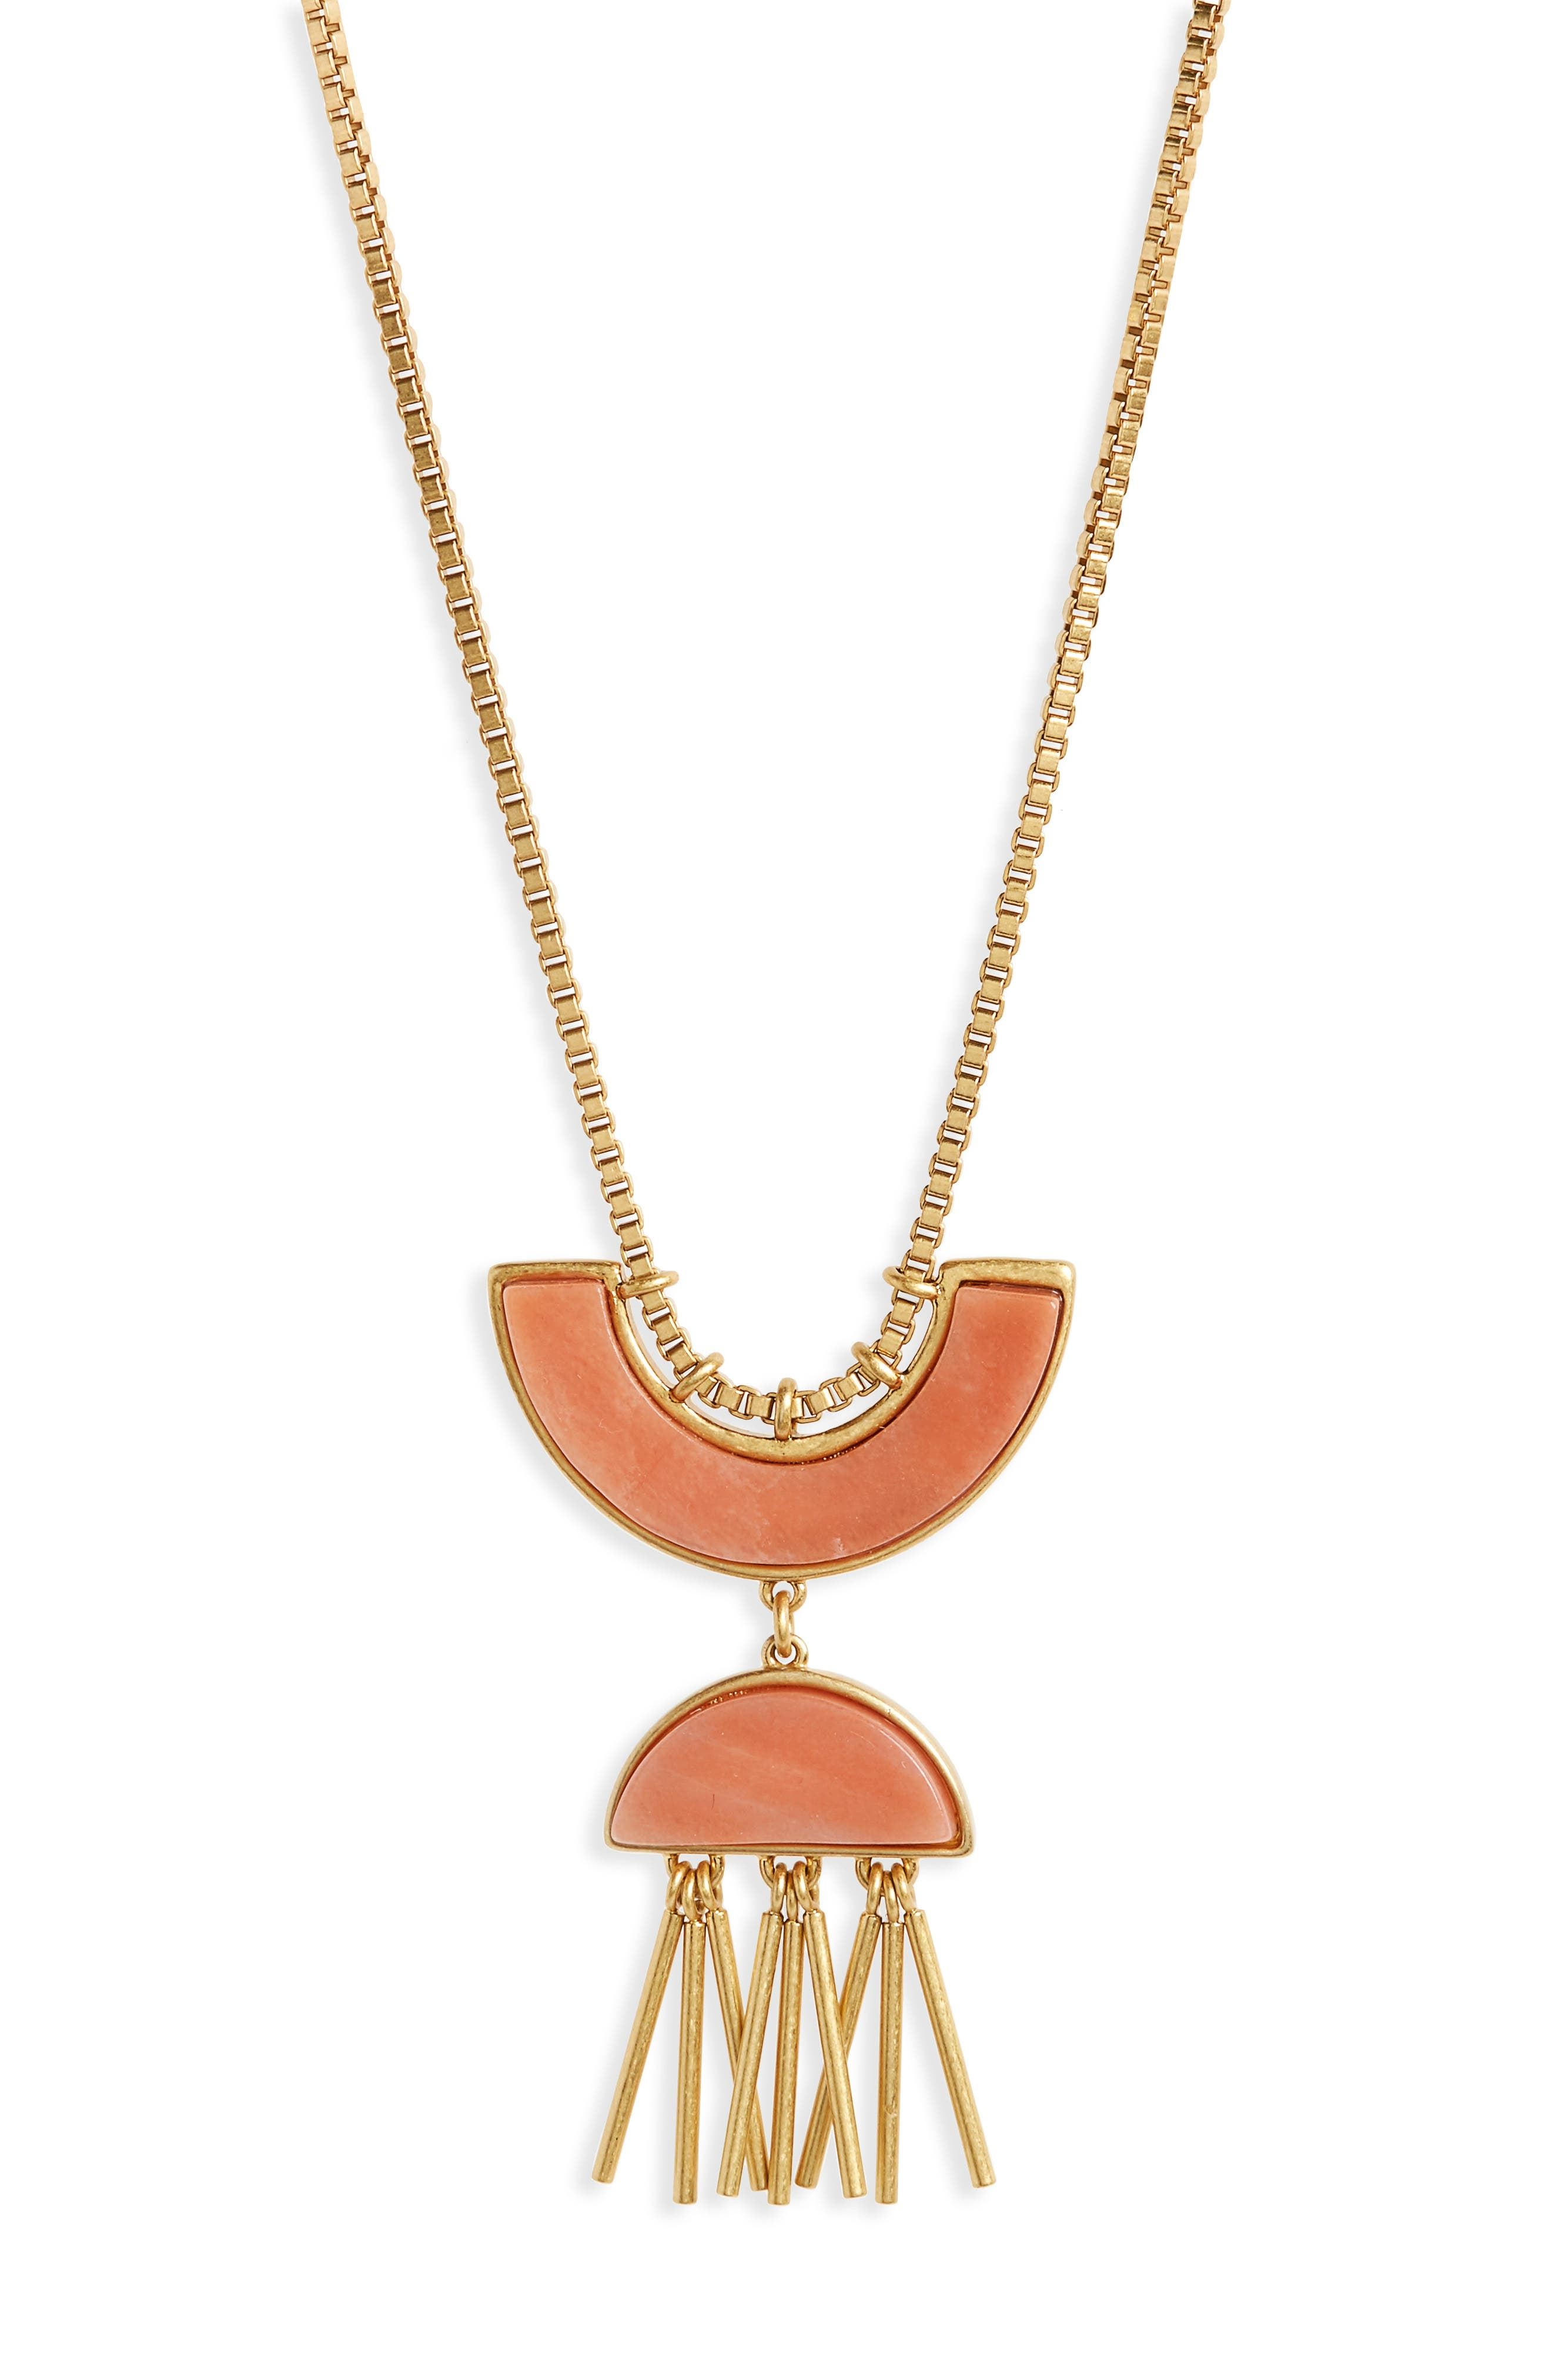 Main Image - Madewell Concept Pendant Necklace